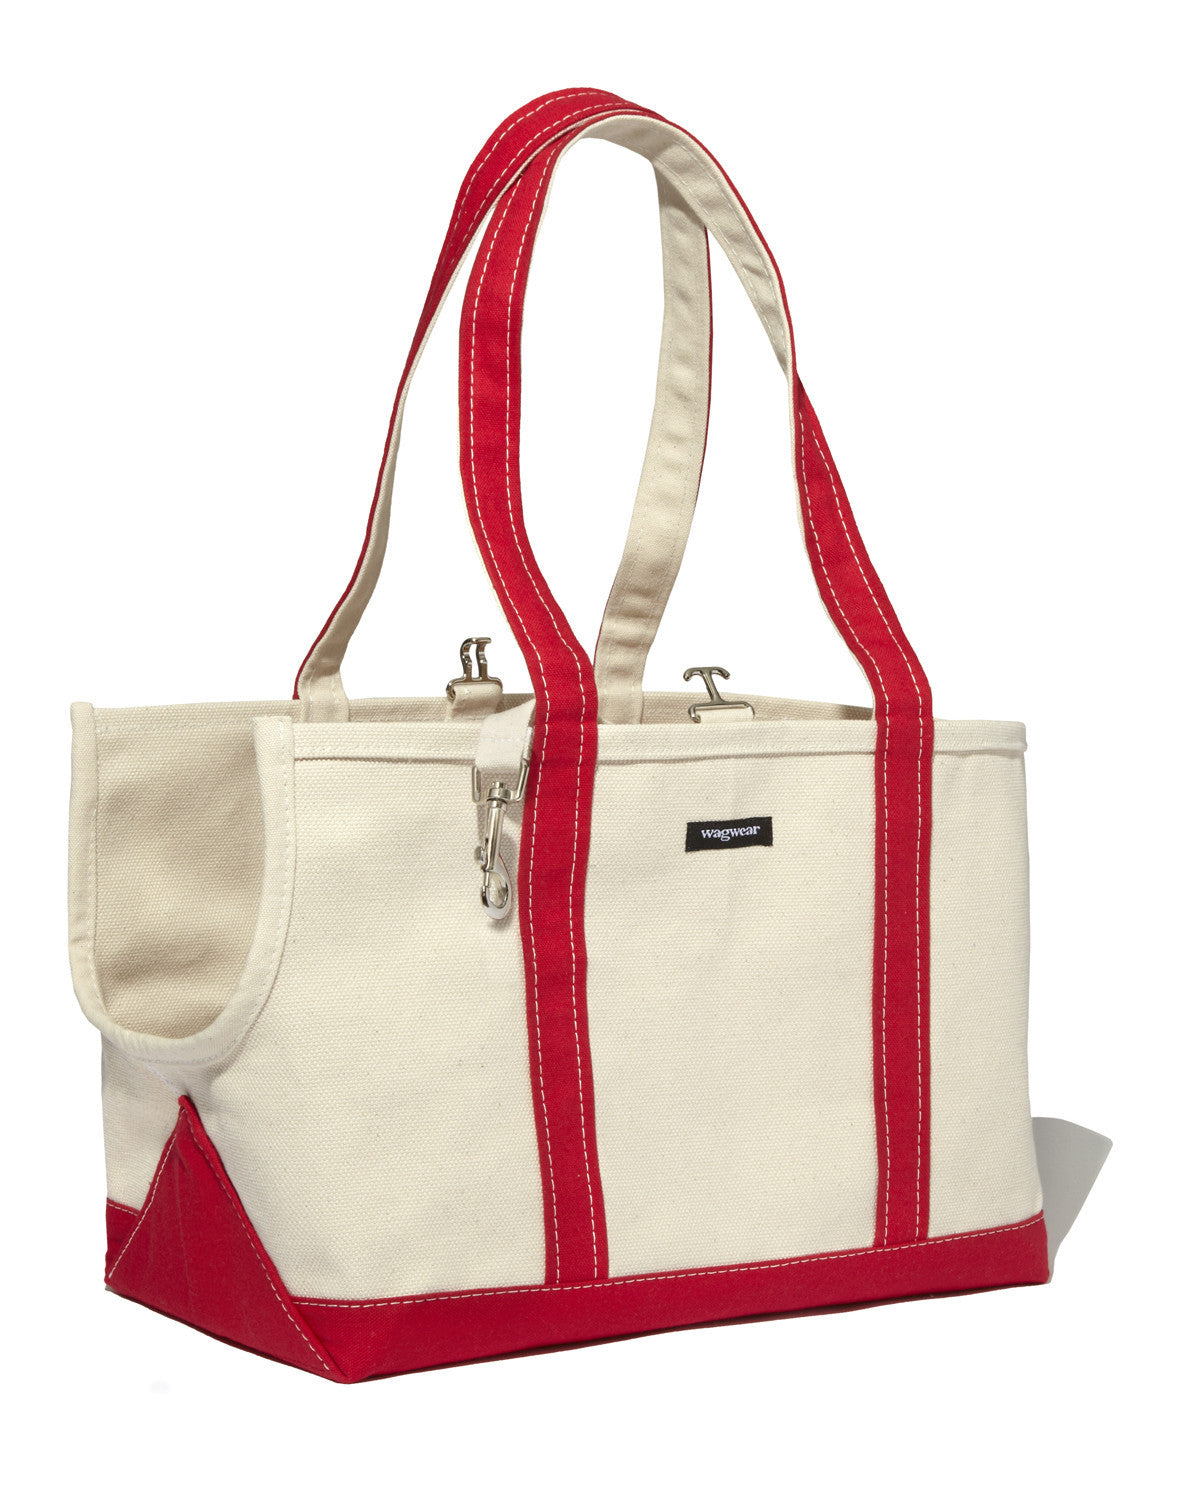 Dog Carrier - Canvas Tote - Open Summer Dog Bag - 6 Color Options